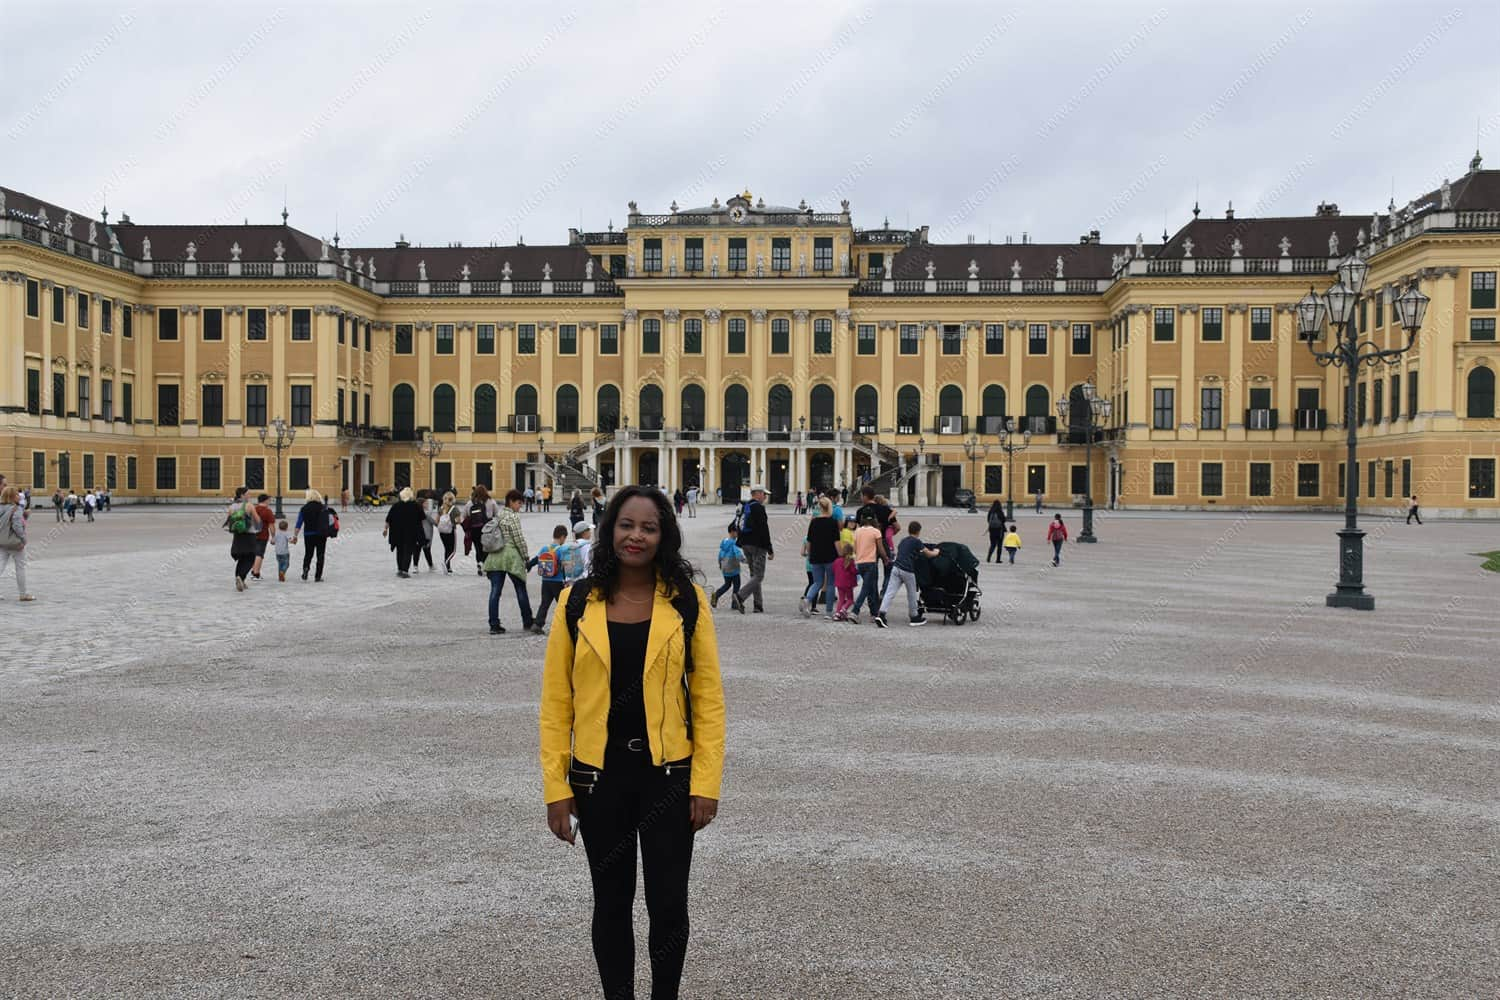 Vienna's Highlight: A Visit To The Schönbrunn Palace